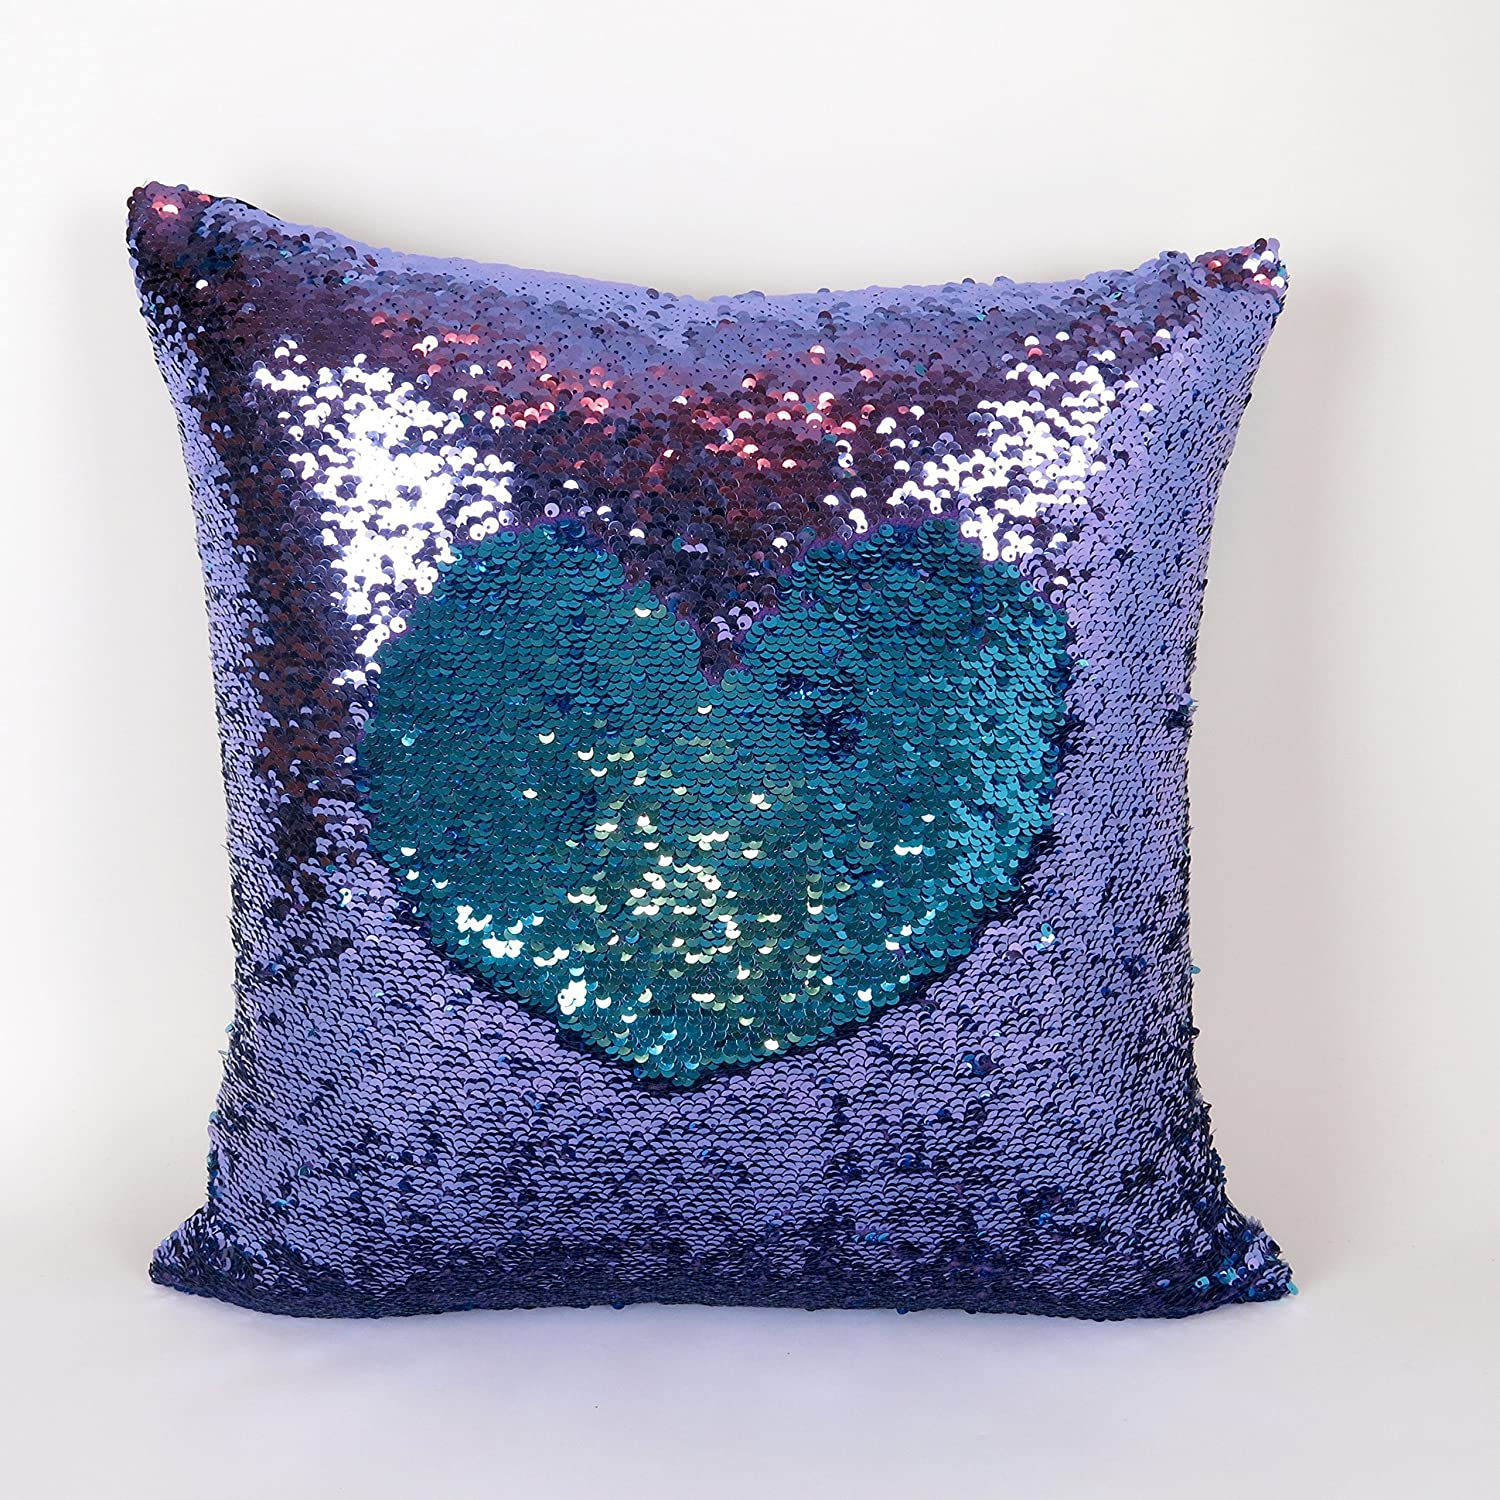 Amazon.com: Mermaid Pillow Cover - Purple and Turquoise Reversible ...